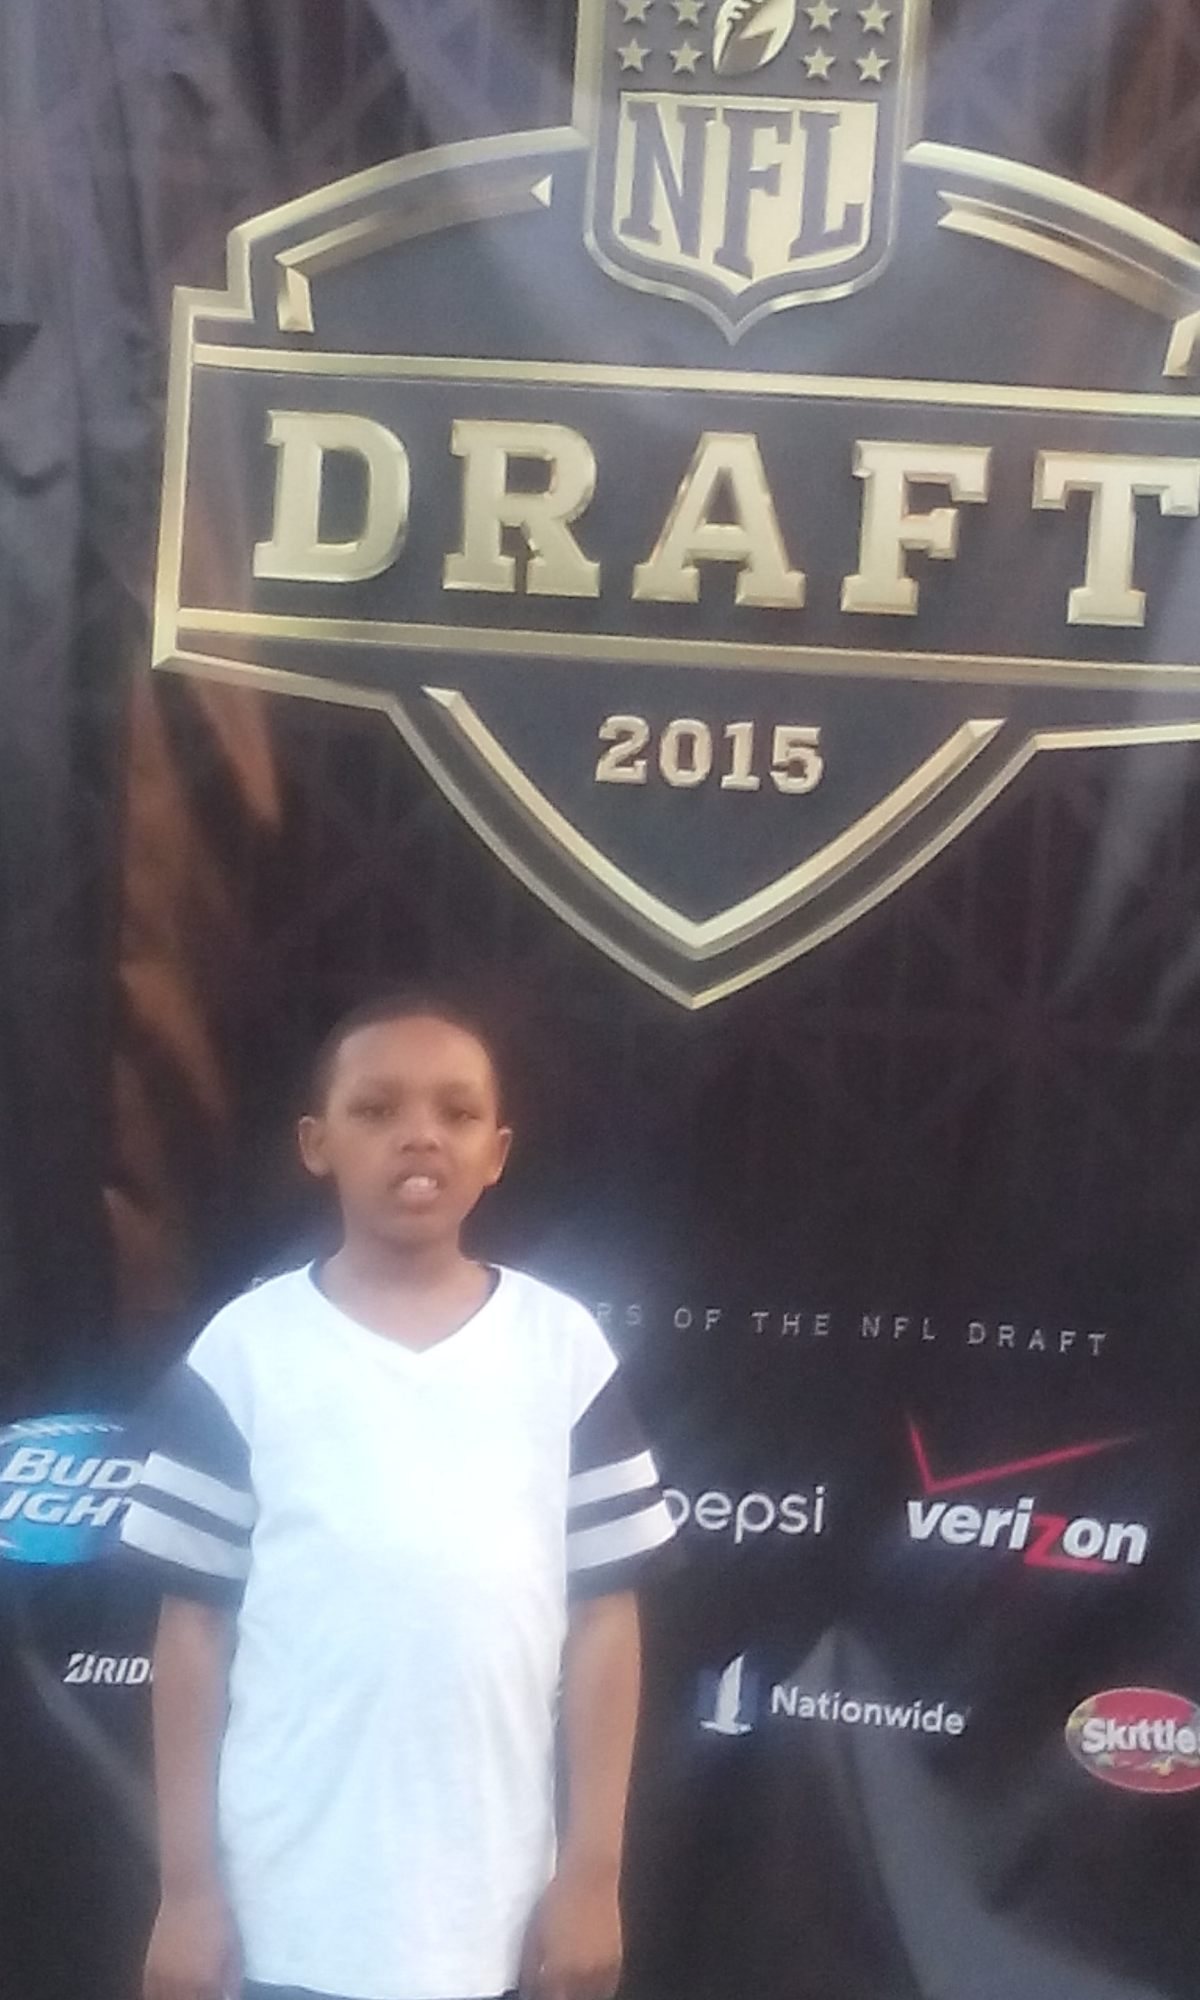 Family Time at NFL Draft 2015